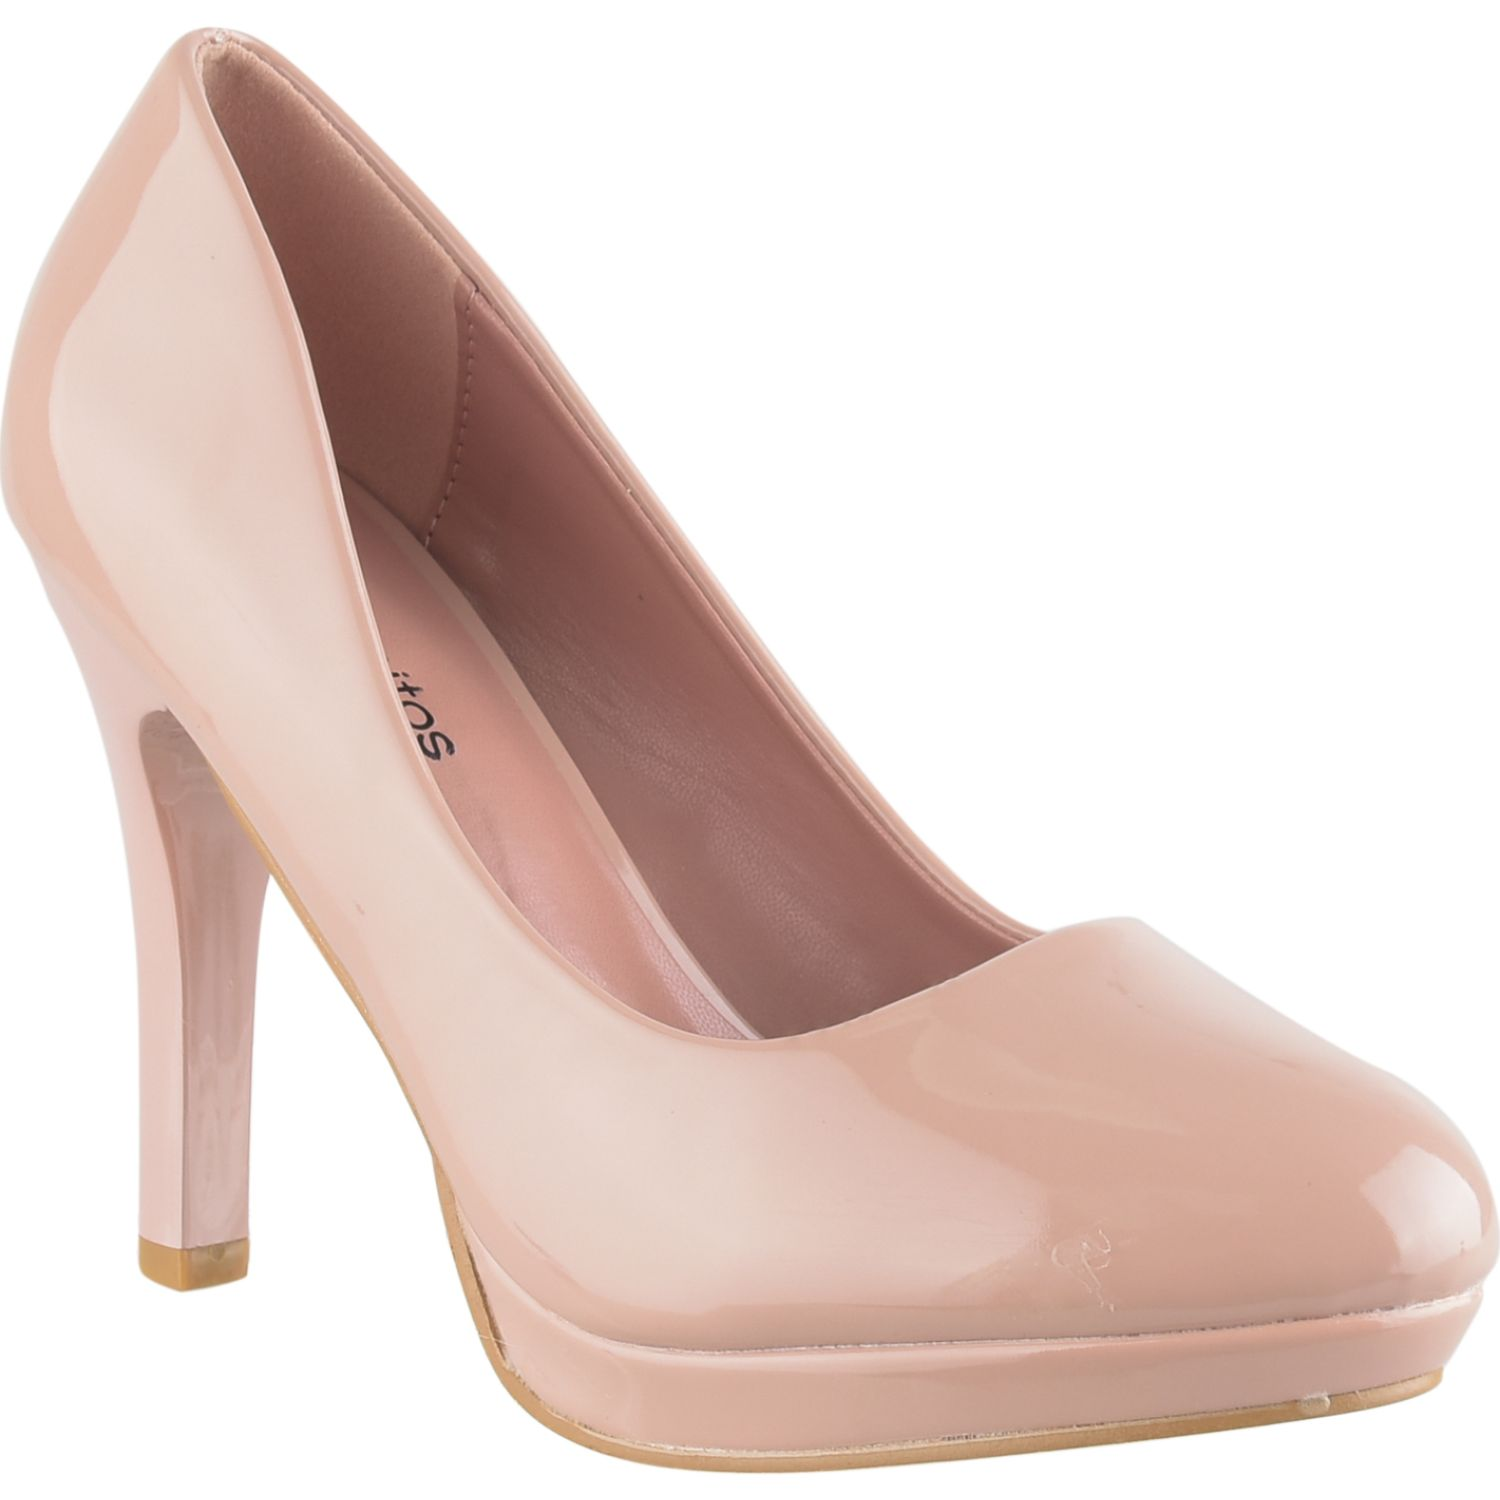 Platanitos cvp 4551 Rosado Estiletos y Pumps